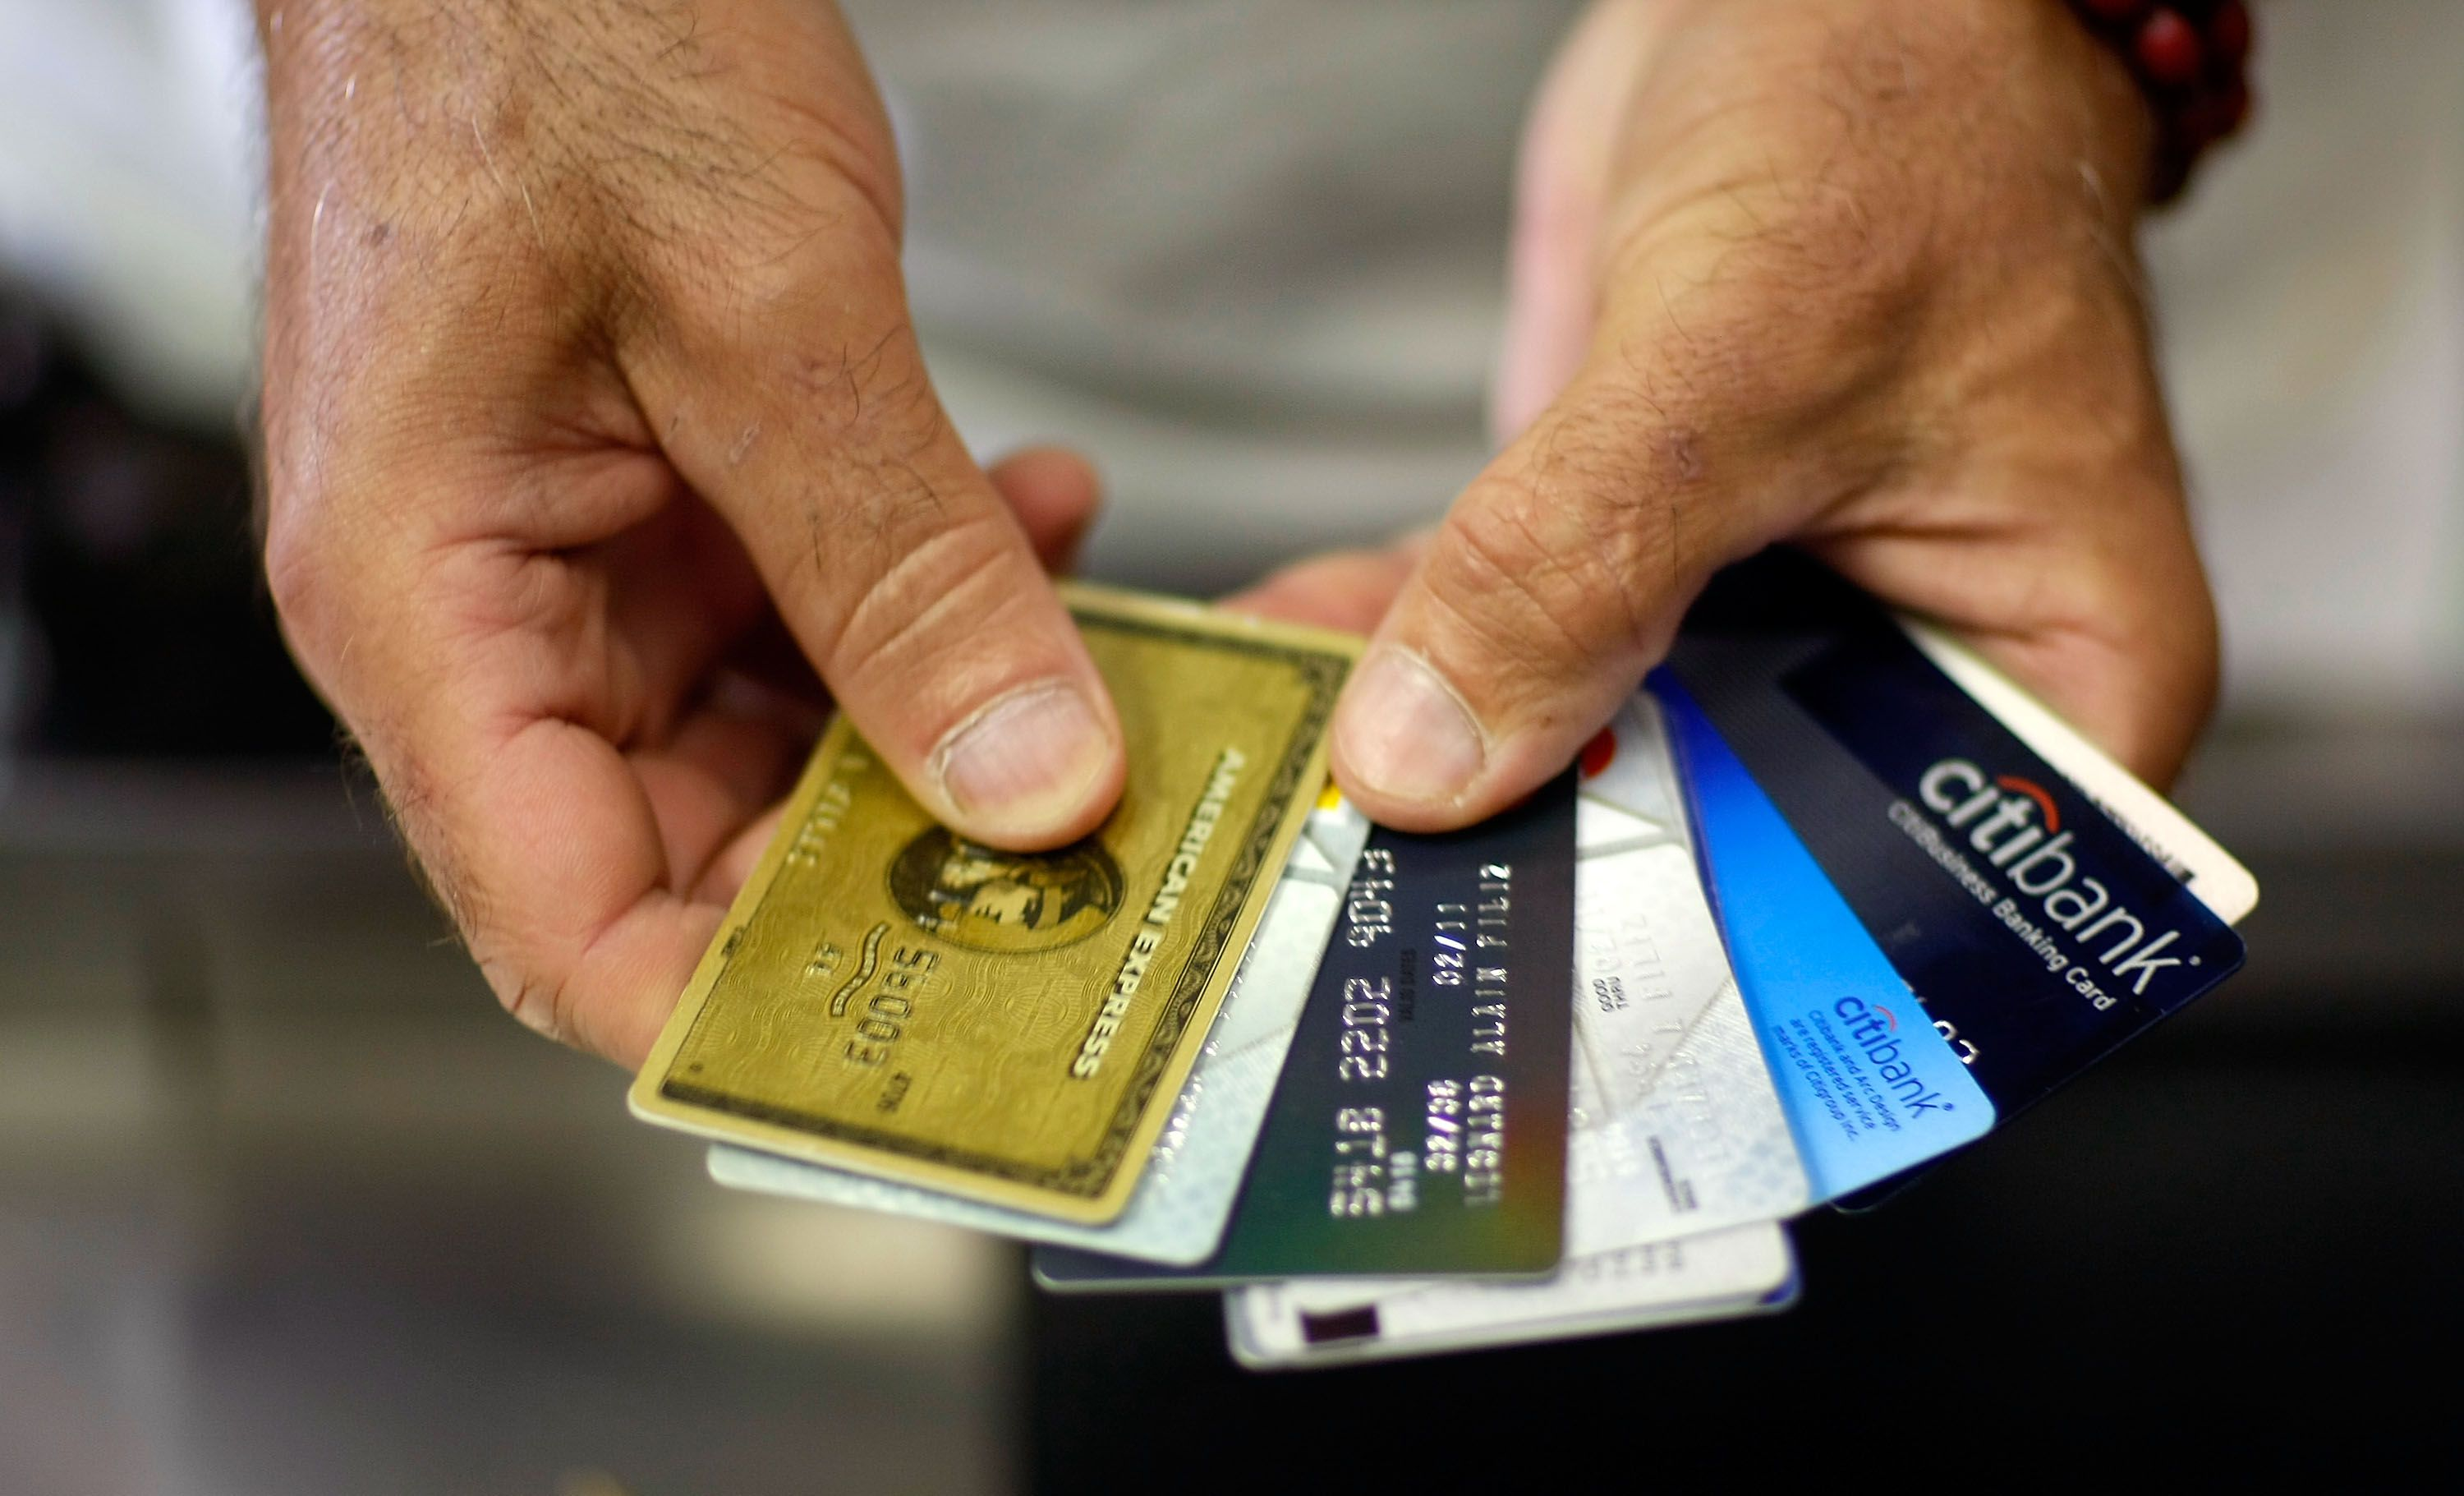 How Opening a New Credit Card Affects Your Credit Score